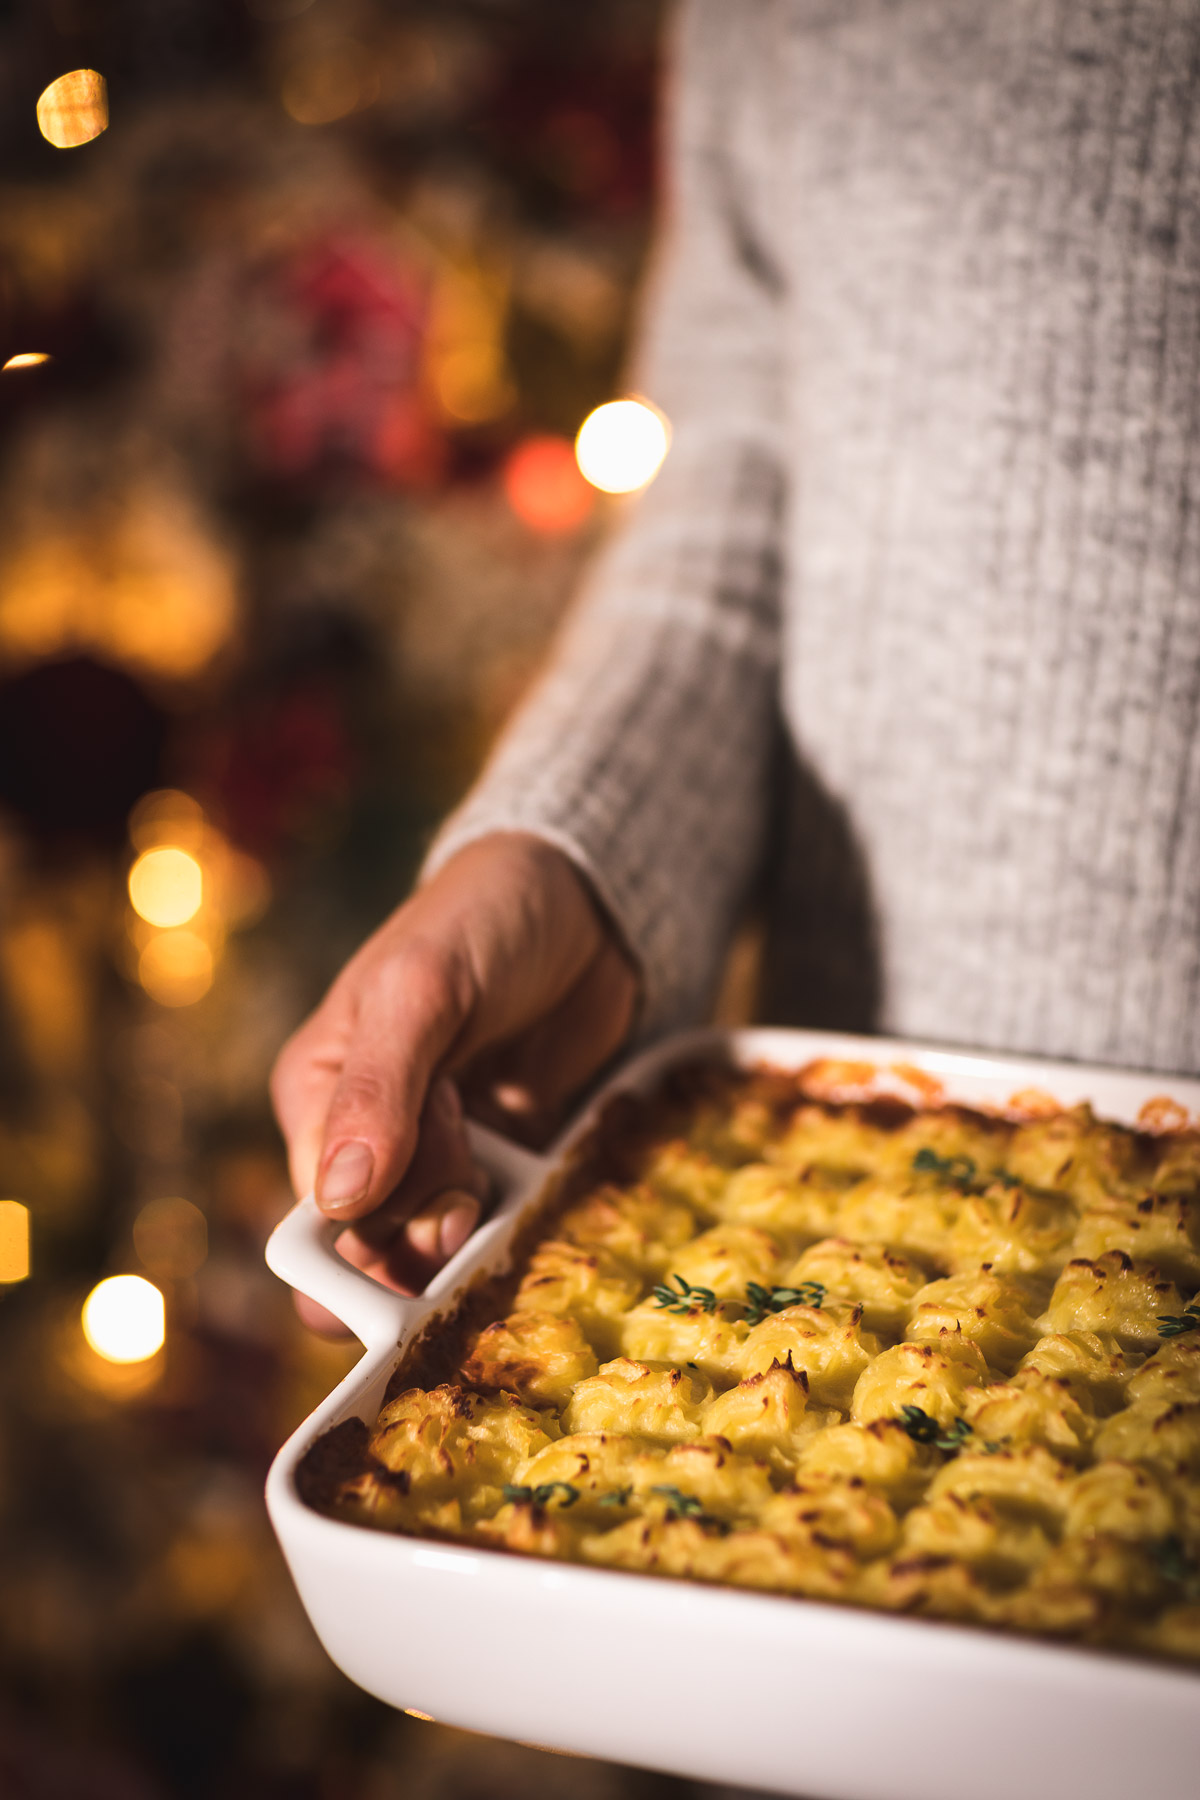 healthy Vegan Lentil Shepherd's Pie recipe cottage pie for Thanksgiving ricetta di Natale Vegan Shepherd's Pie di lenticchie con ragù di lenticchie funghi